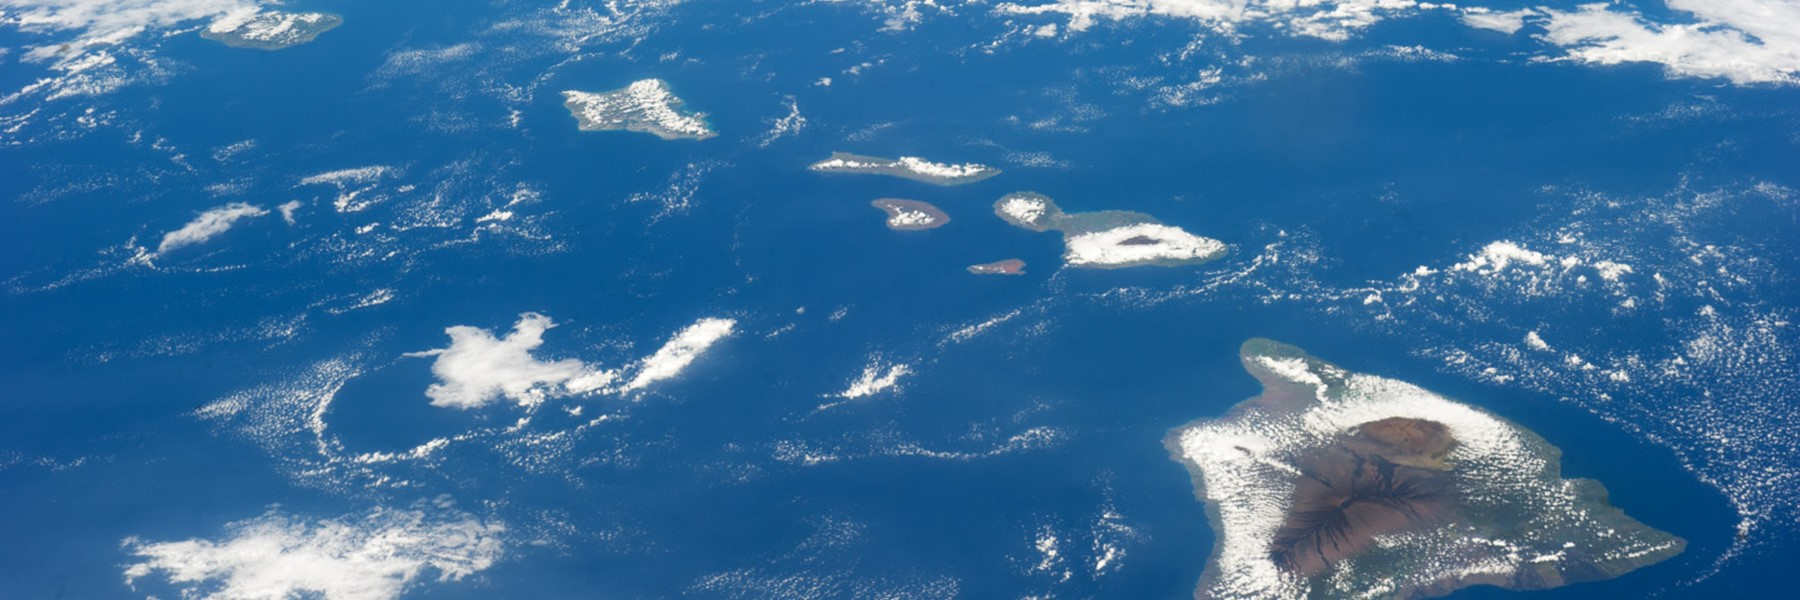 Satellite Image Of Hawaii From Space.